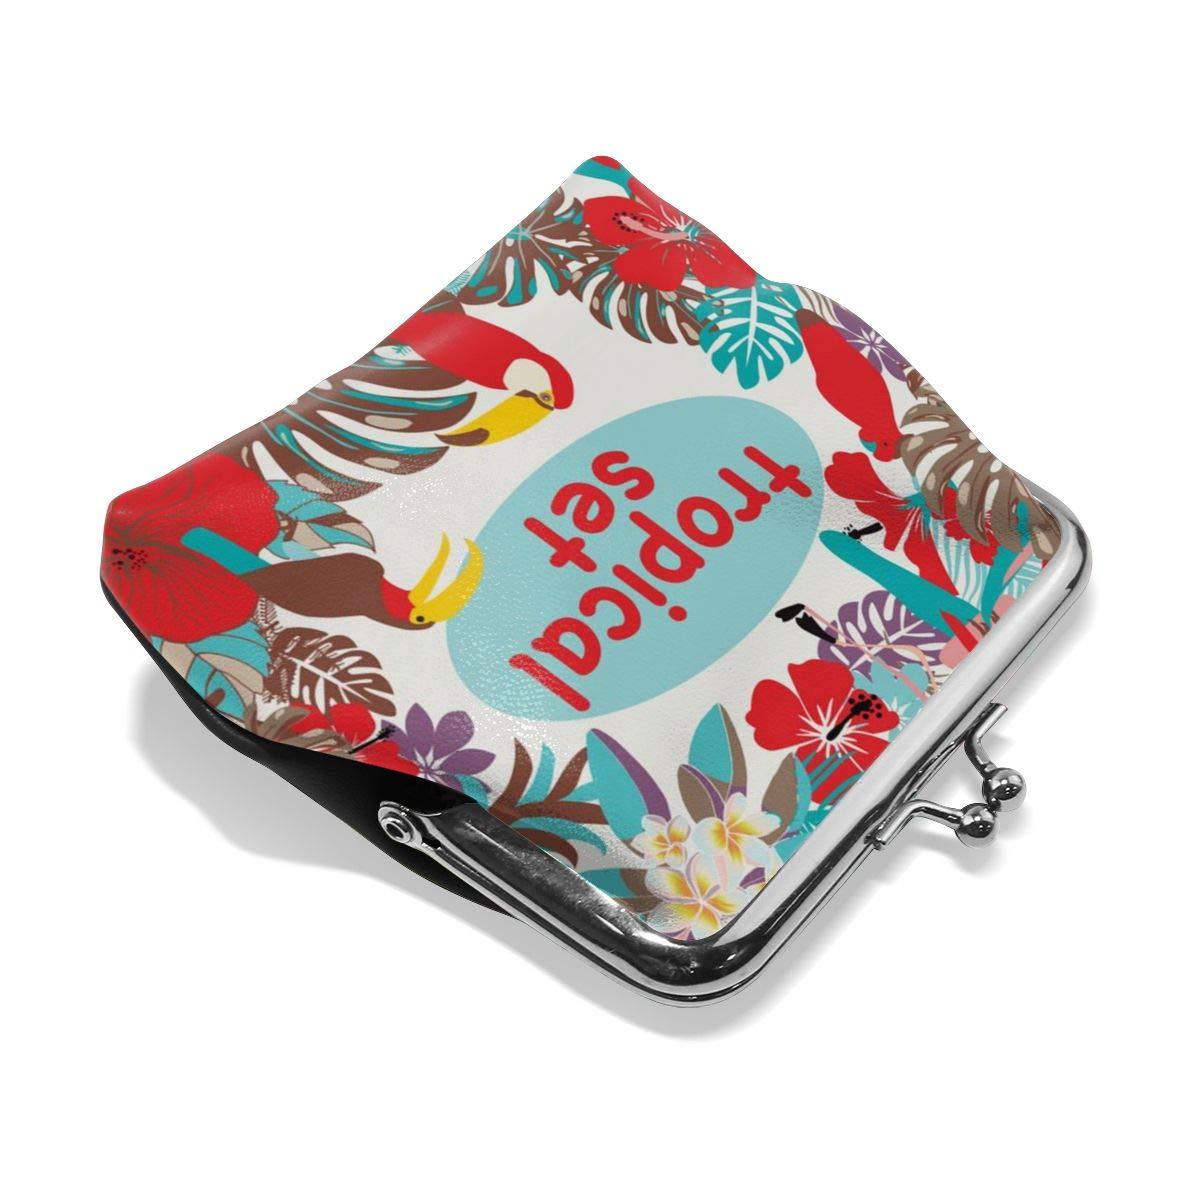 Yunshm Tropical Birds Palm Leaves And Vector Image Personalized Leather Classic Floral Coin Purse Clutch Pouch Wallet For Womens